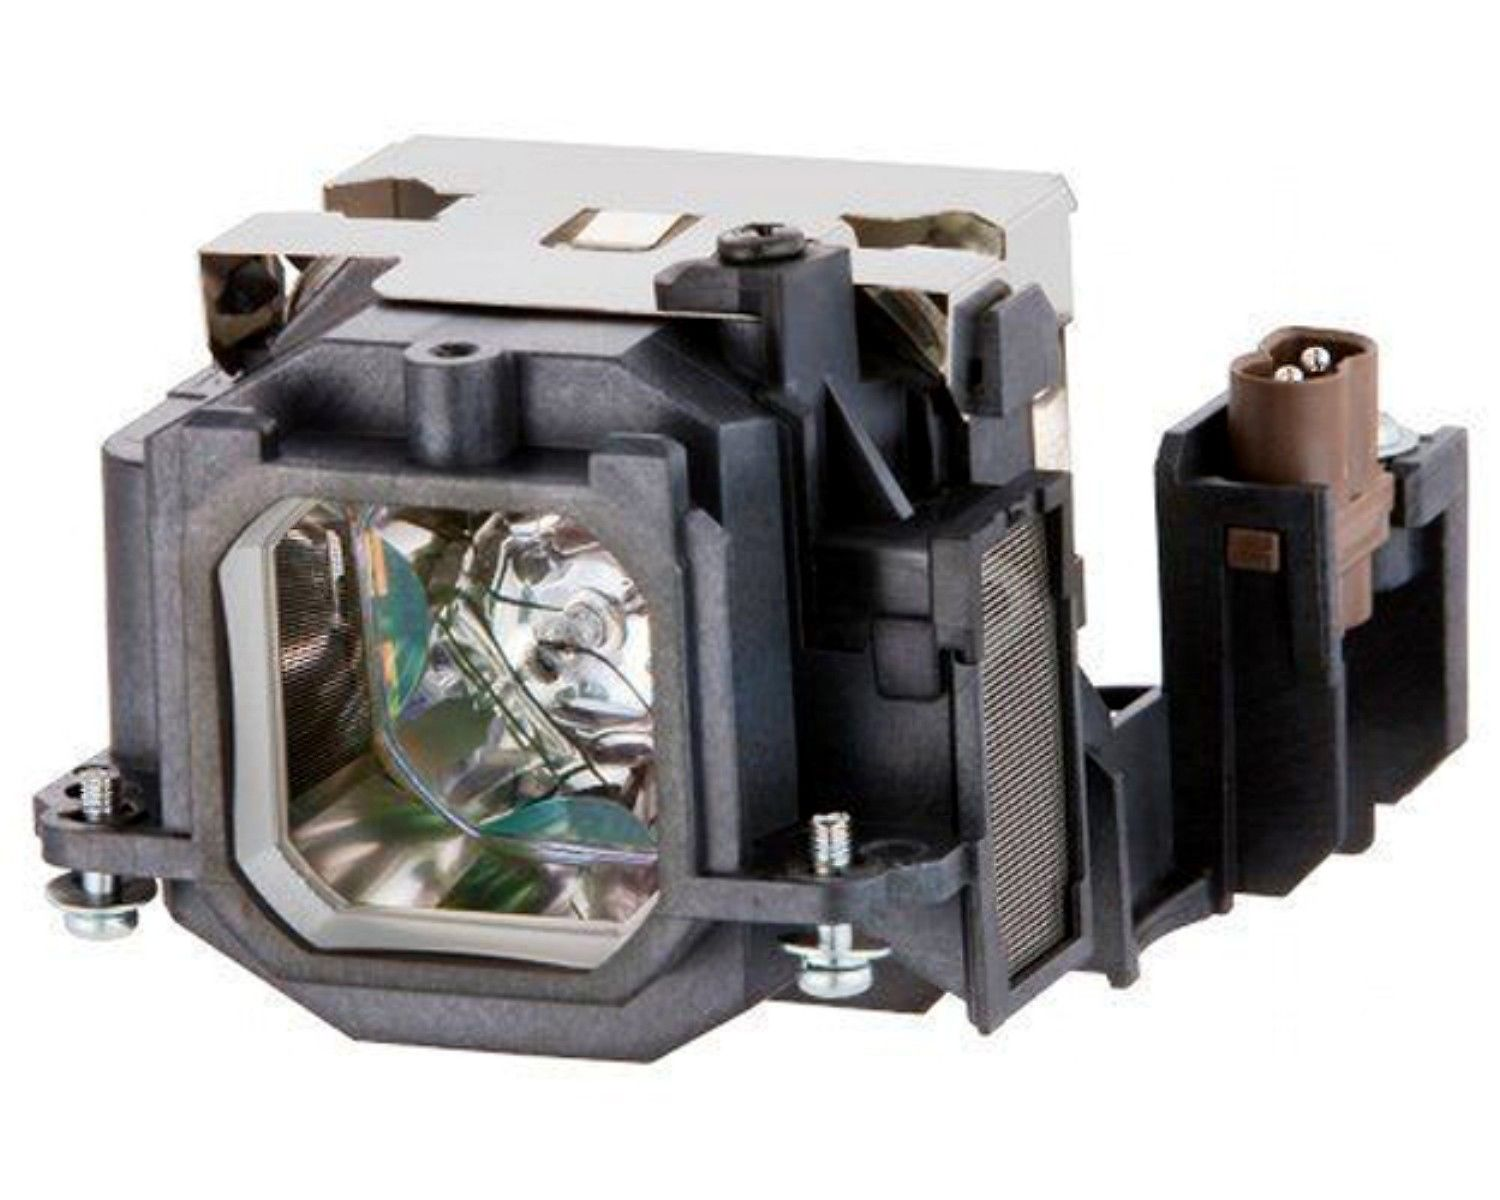 Projector Lamp Bulb ET-LAB2 ETLAB2 for Panasonic PT-LB1 PT-LB2 PT-LB1EA PT-LB2EA PT-ST10 PT-LB3E With Housing projector lamp bulb et lab80 etlab80 for panasonic pt lb75 pt lb80 pt lw80ntu pt lb75ea pt lb75nt with housing